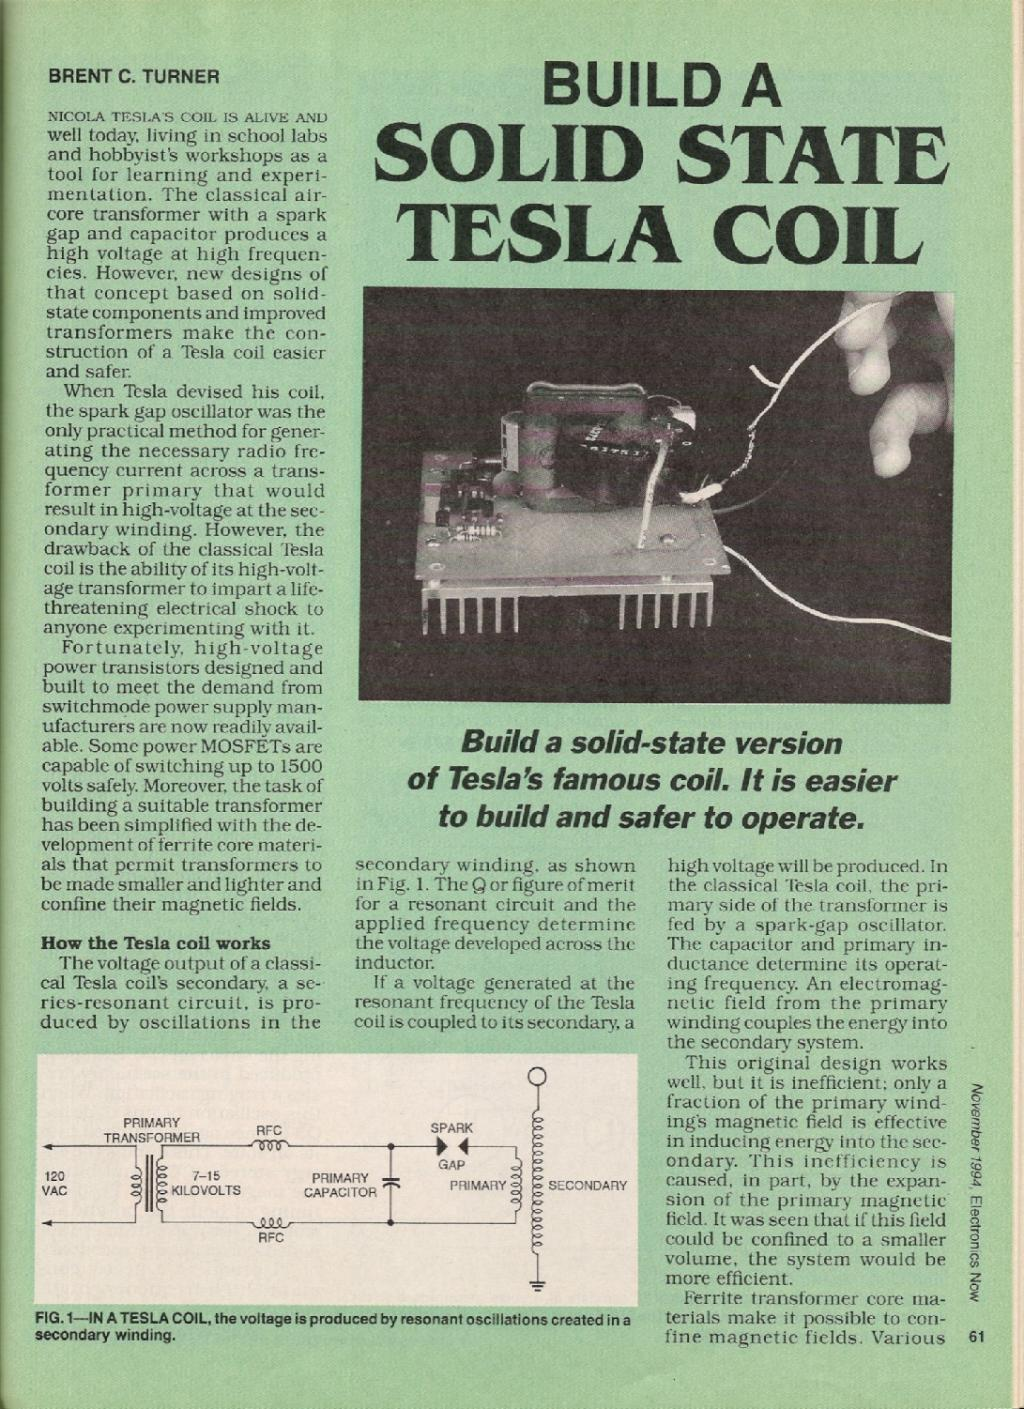 Preview of Build a Solid State Tesla Coil plan